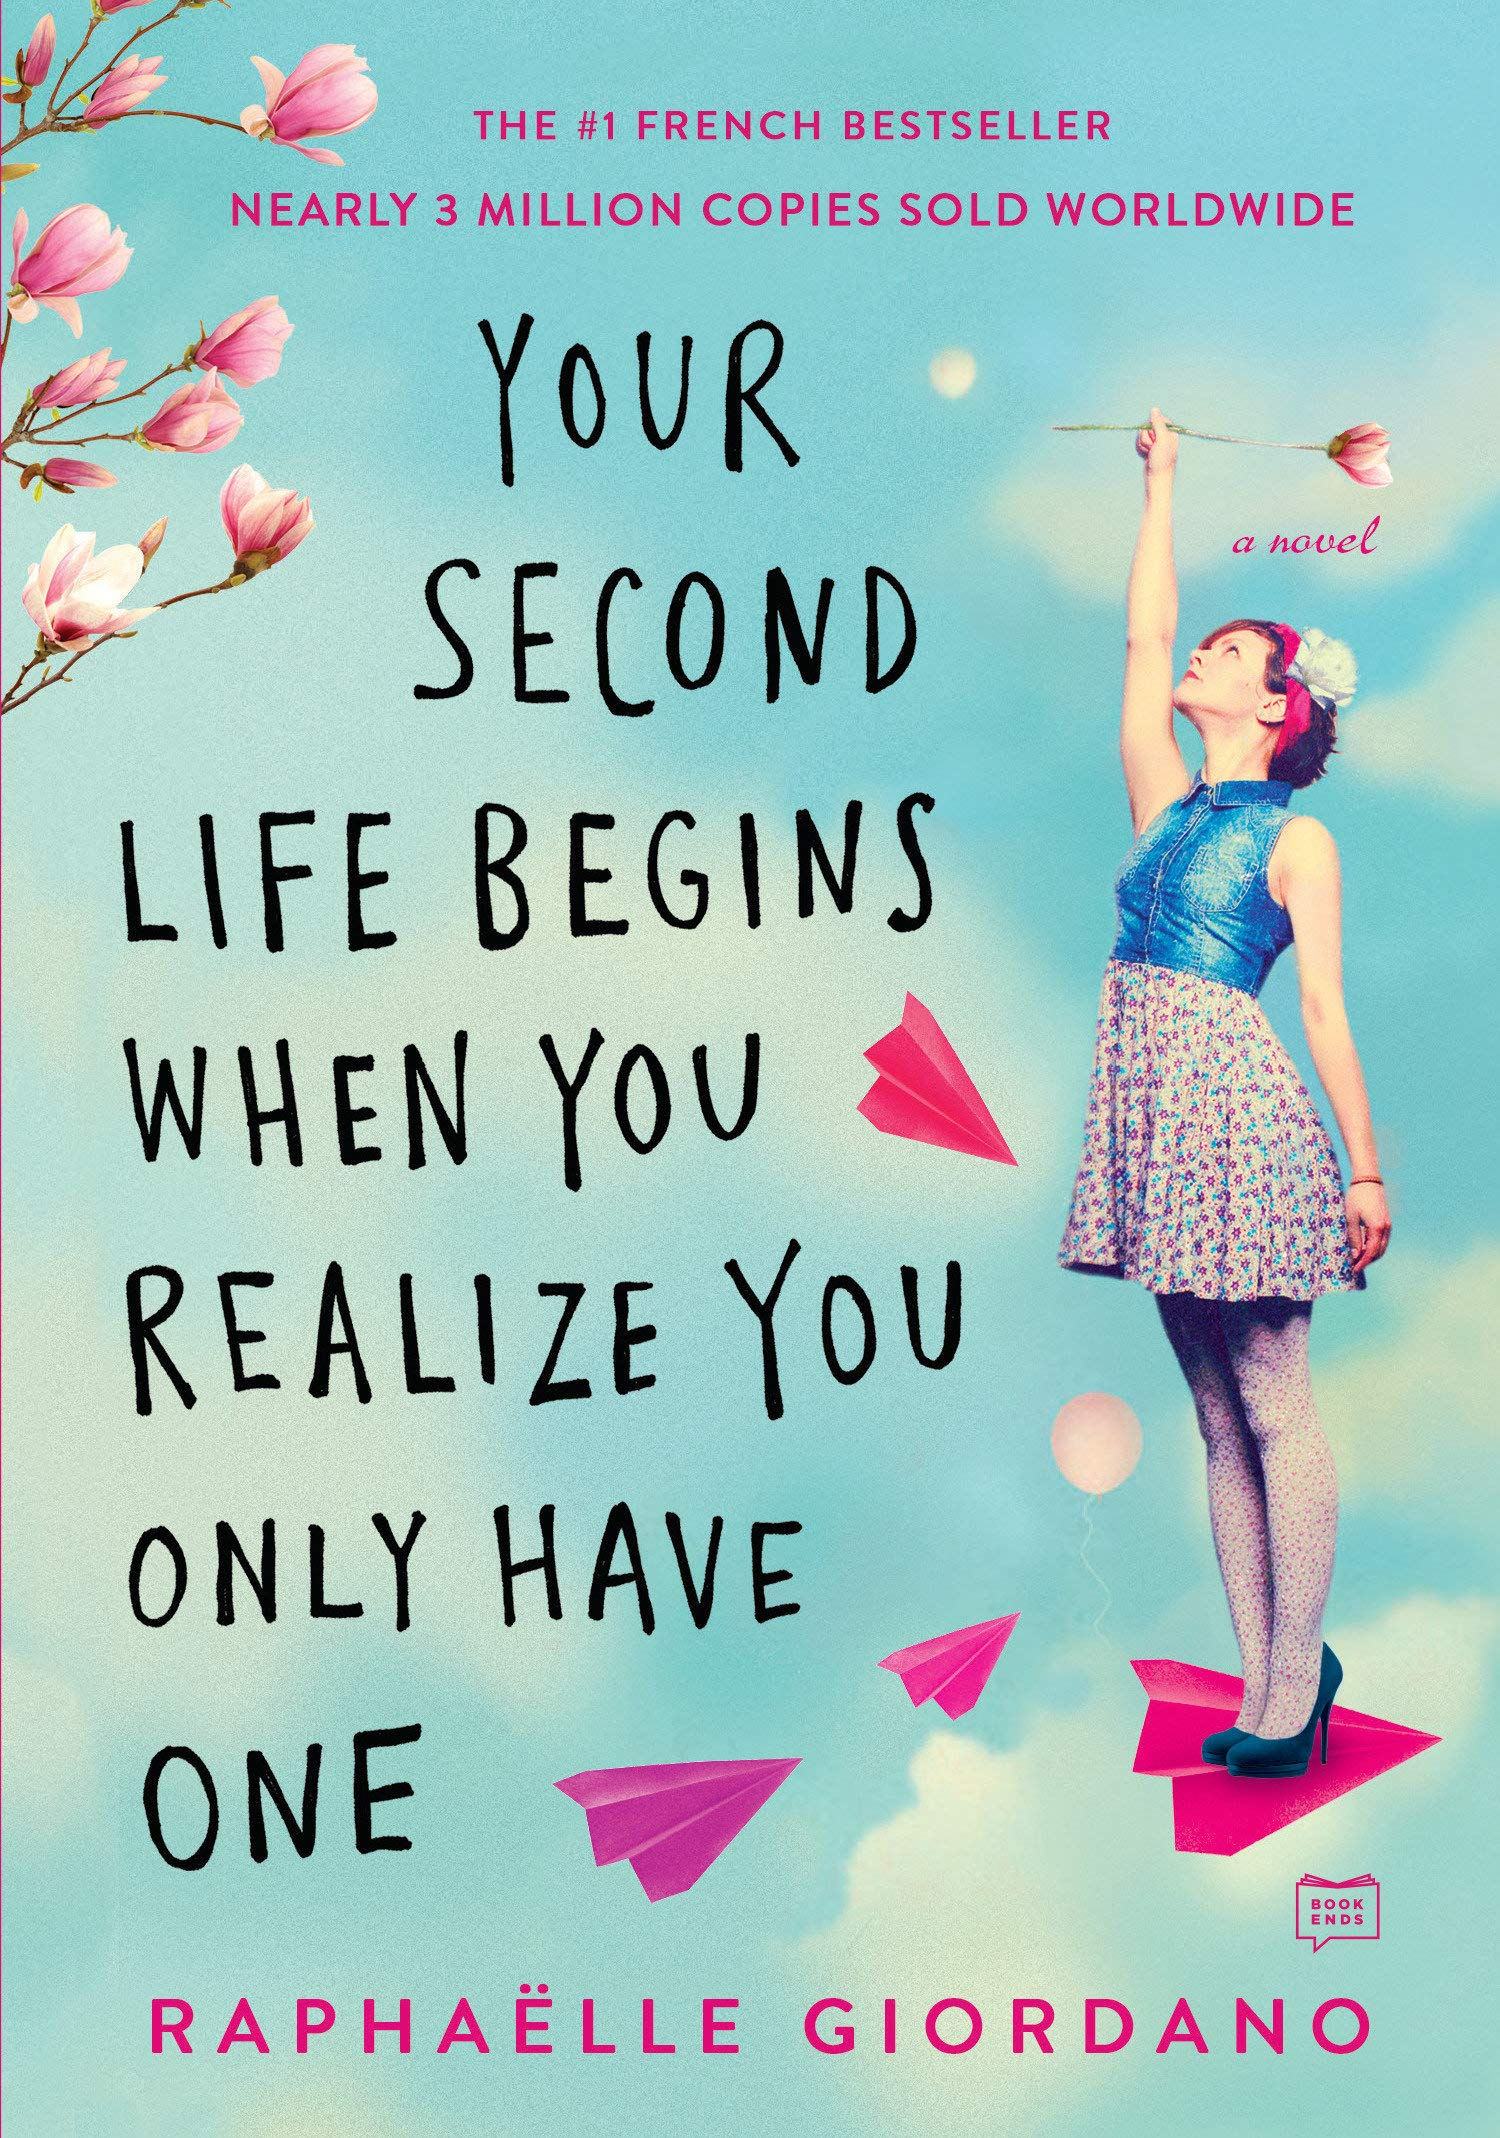 Your Second Life Begins When You Realize You Only Have One by G.P. Putnam's Sons